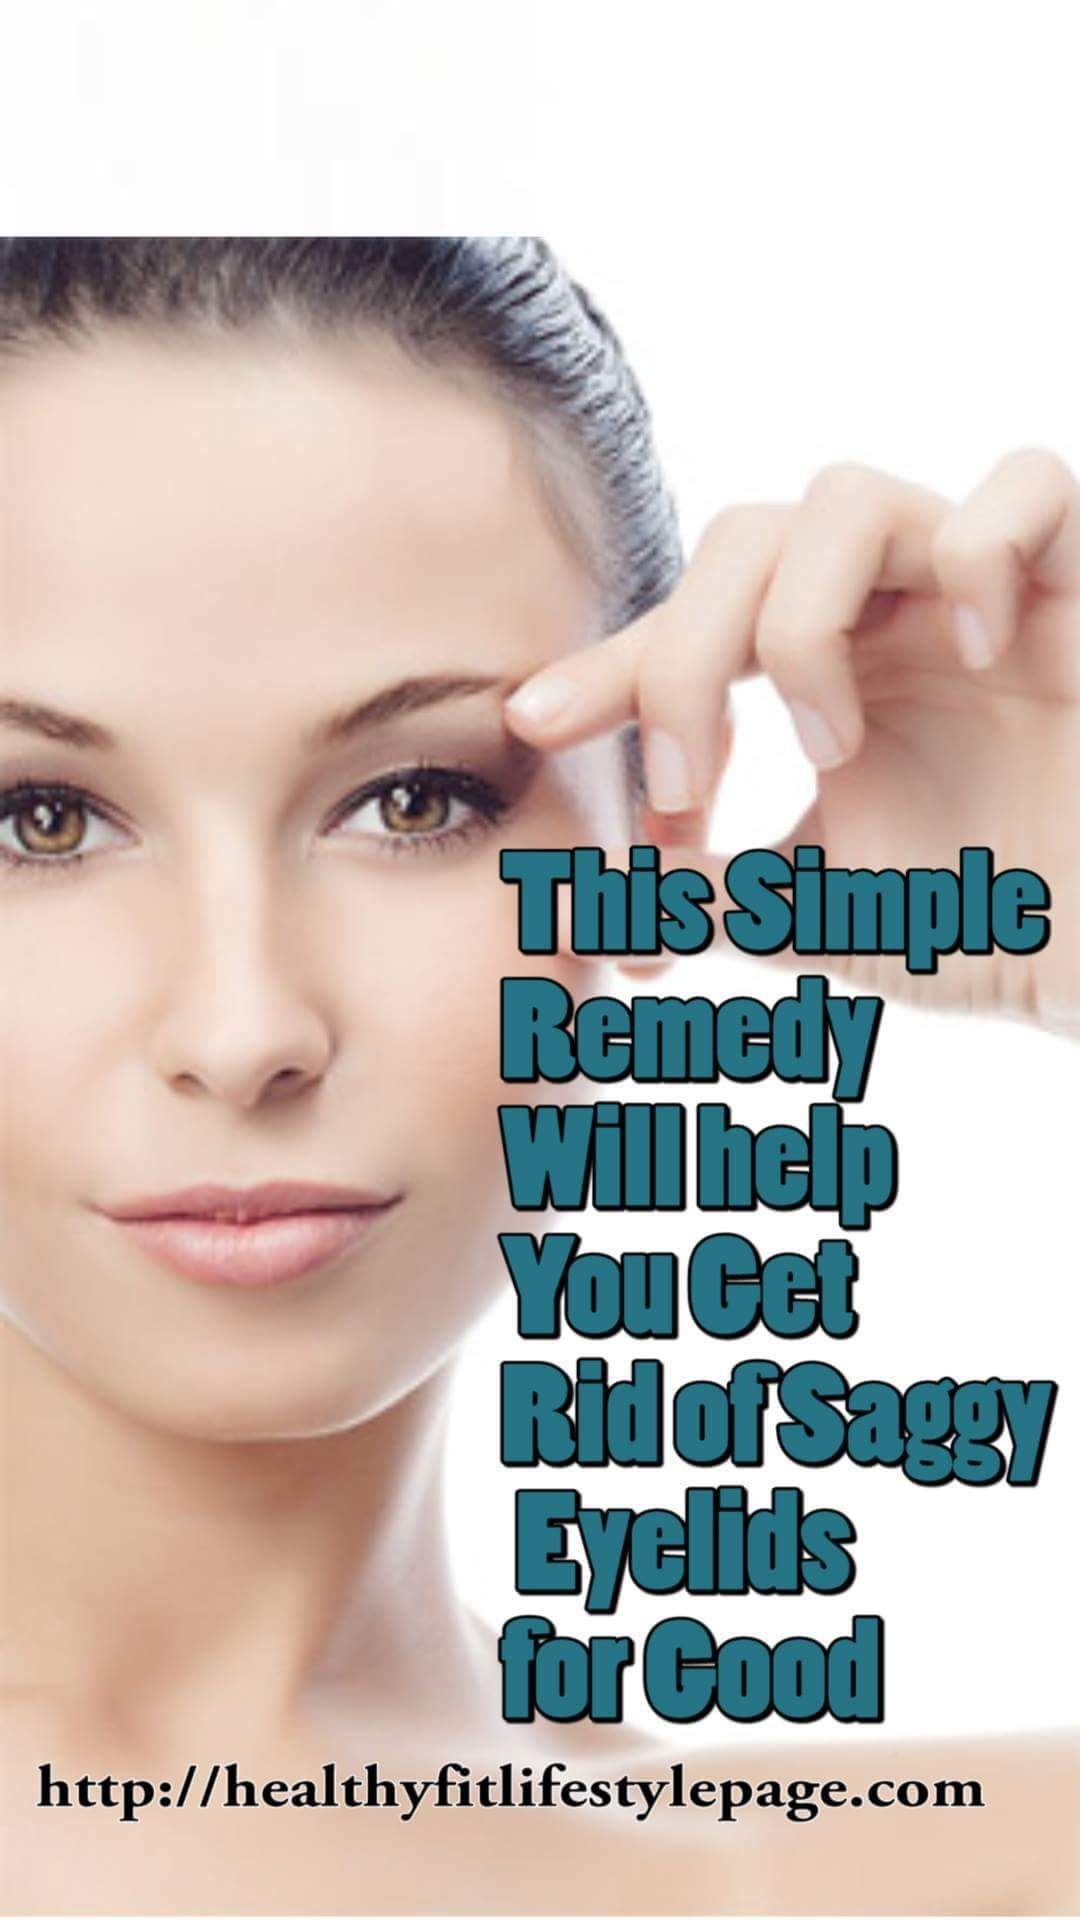 How to even out your eyelids without surgery youtube - If You Are Struggling With Saggy Eyelids Then You Must Have Gone Through The Frustrating